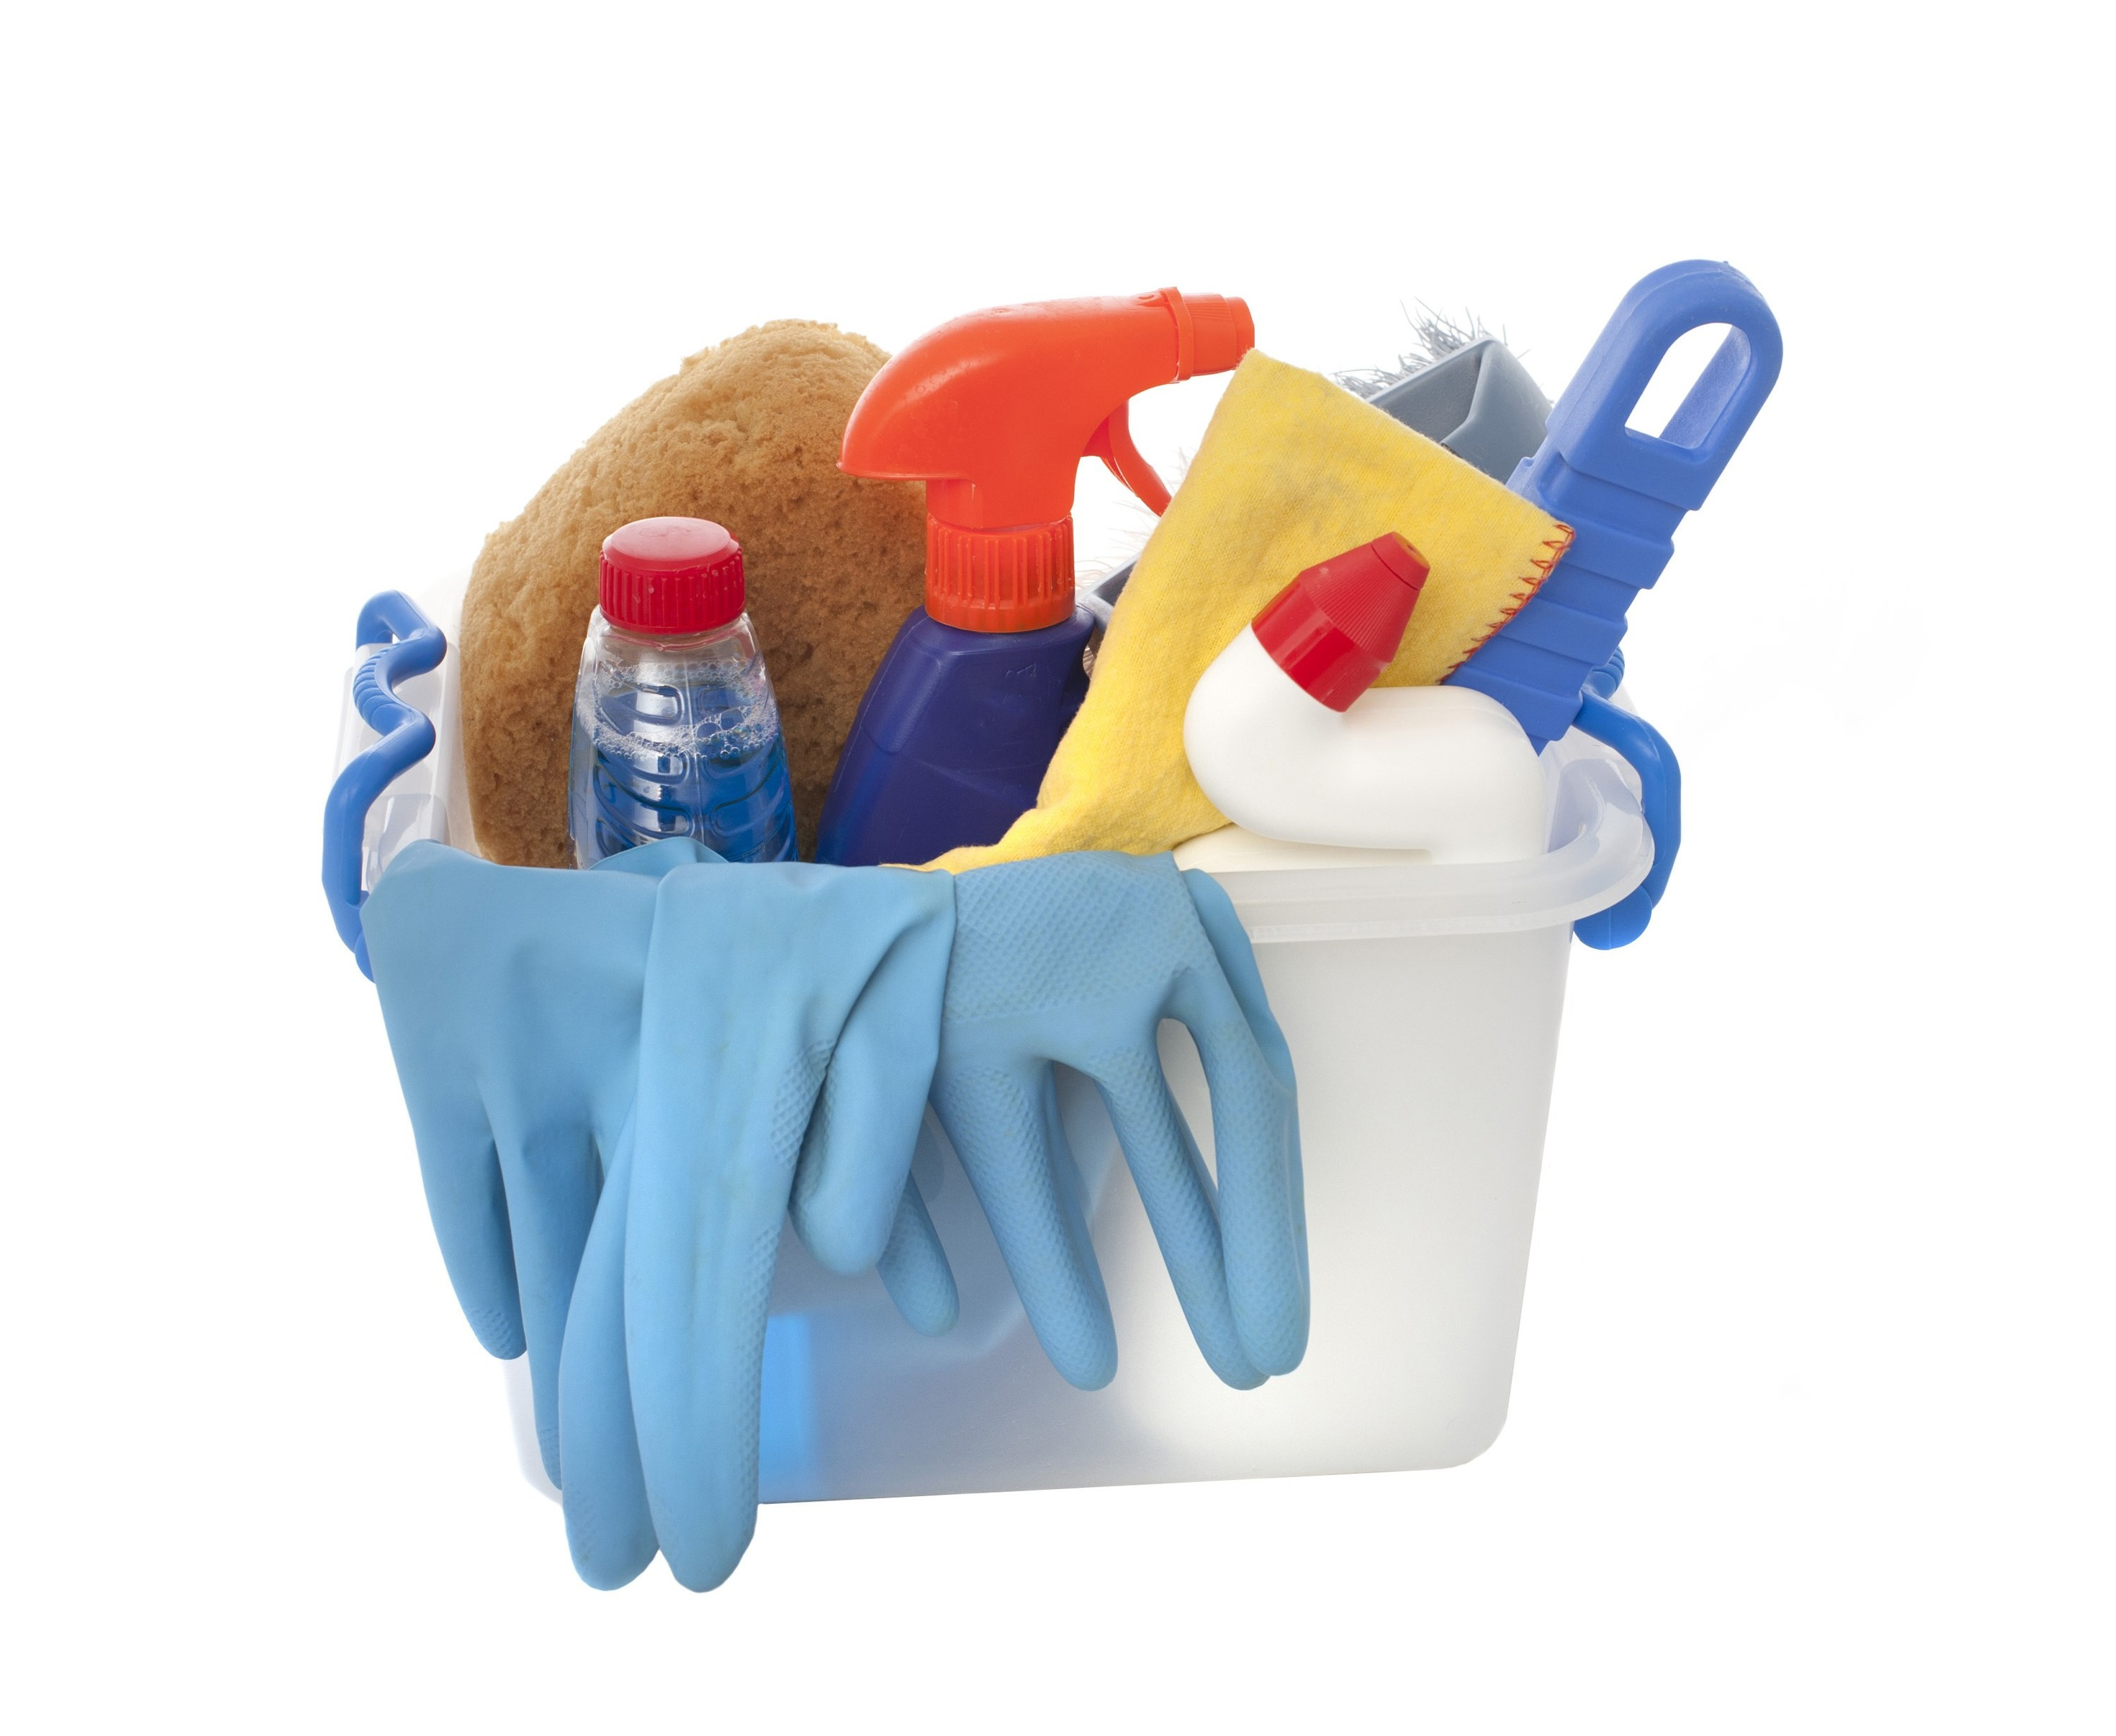 Free Image Of Cleaning Products - Bathroom cleaning materials